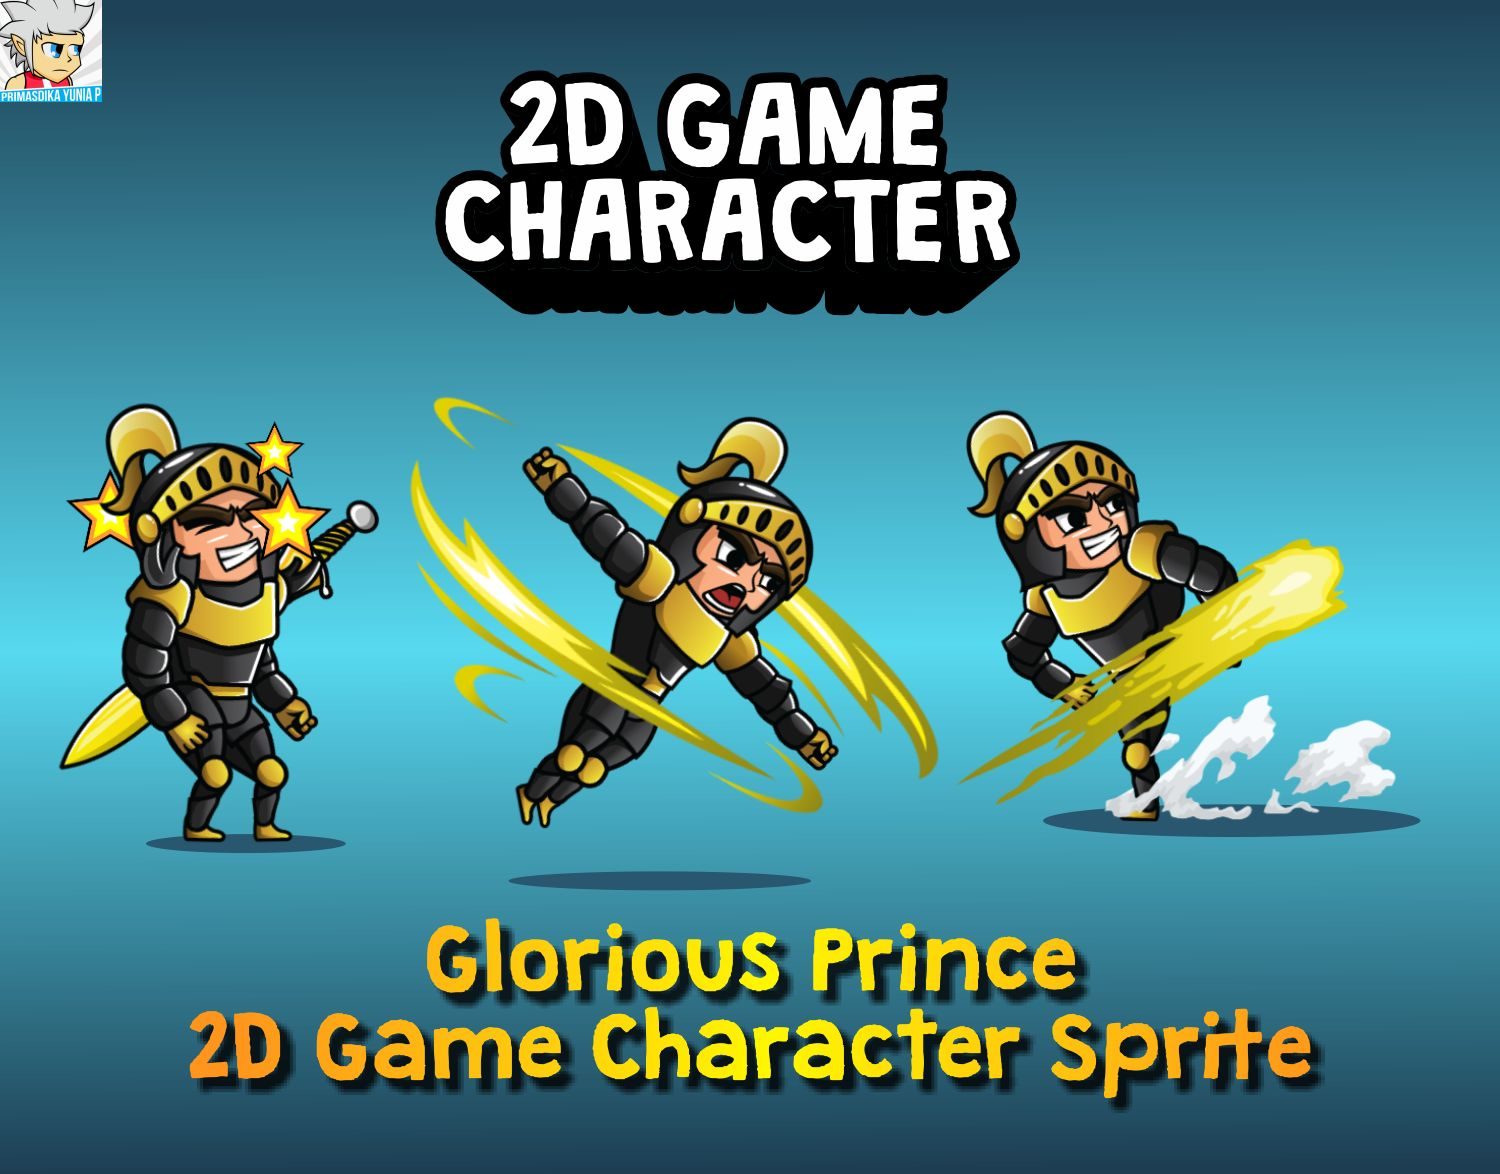 Glorious Spartan 2D Game Character Sprite Screenshot 1